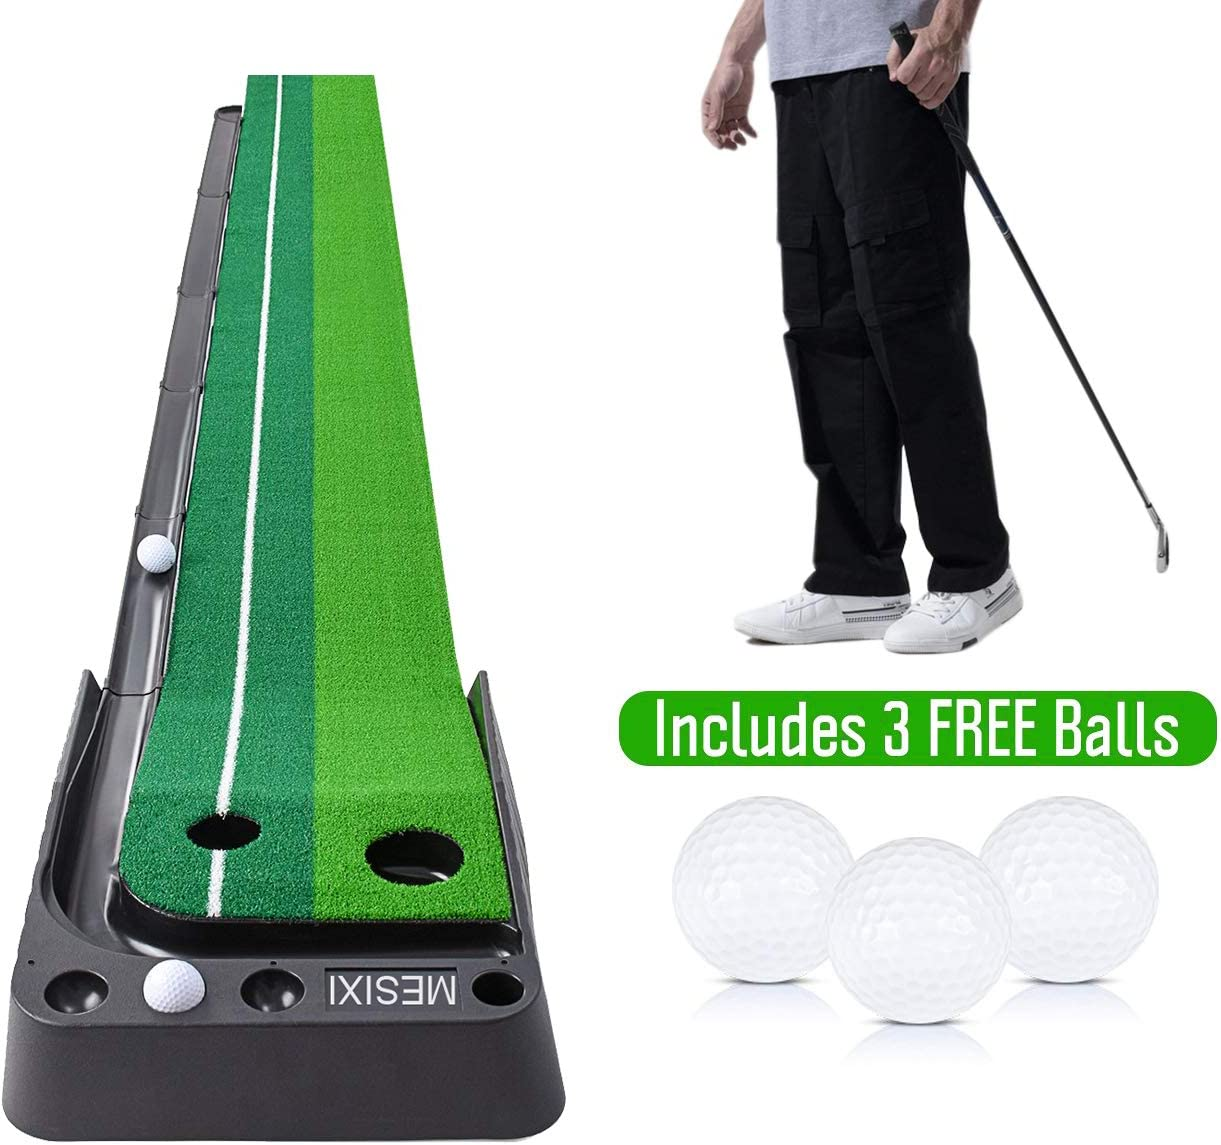 Mesixi Indoor Outdoor Golf Putting Green Mat Portable Baffle Plate Auto Ball Return System Mini Golf Practice Training Aid Equipment Game And Golf Gifts For Men Home Office Outdoor Use